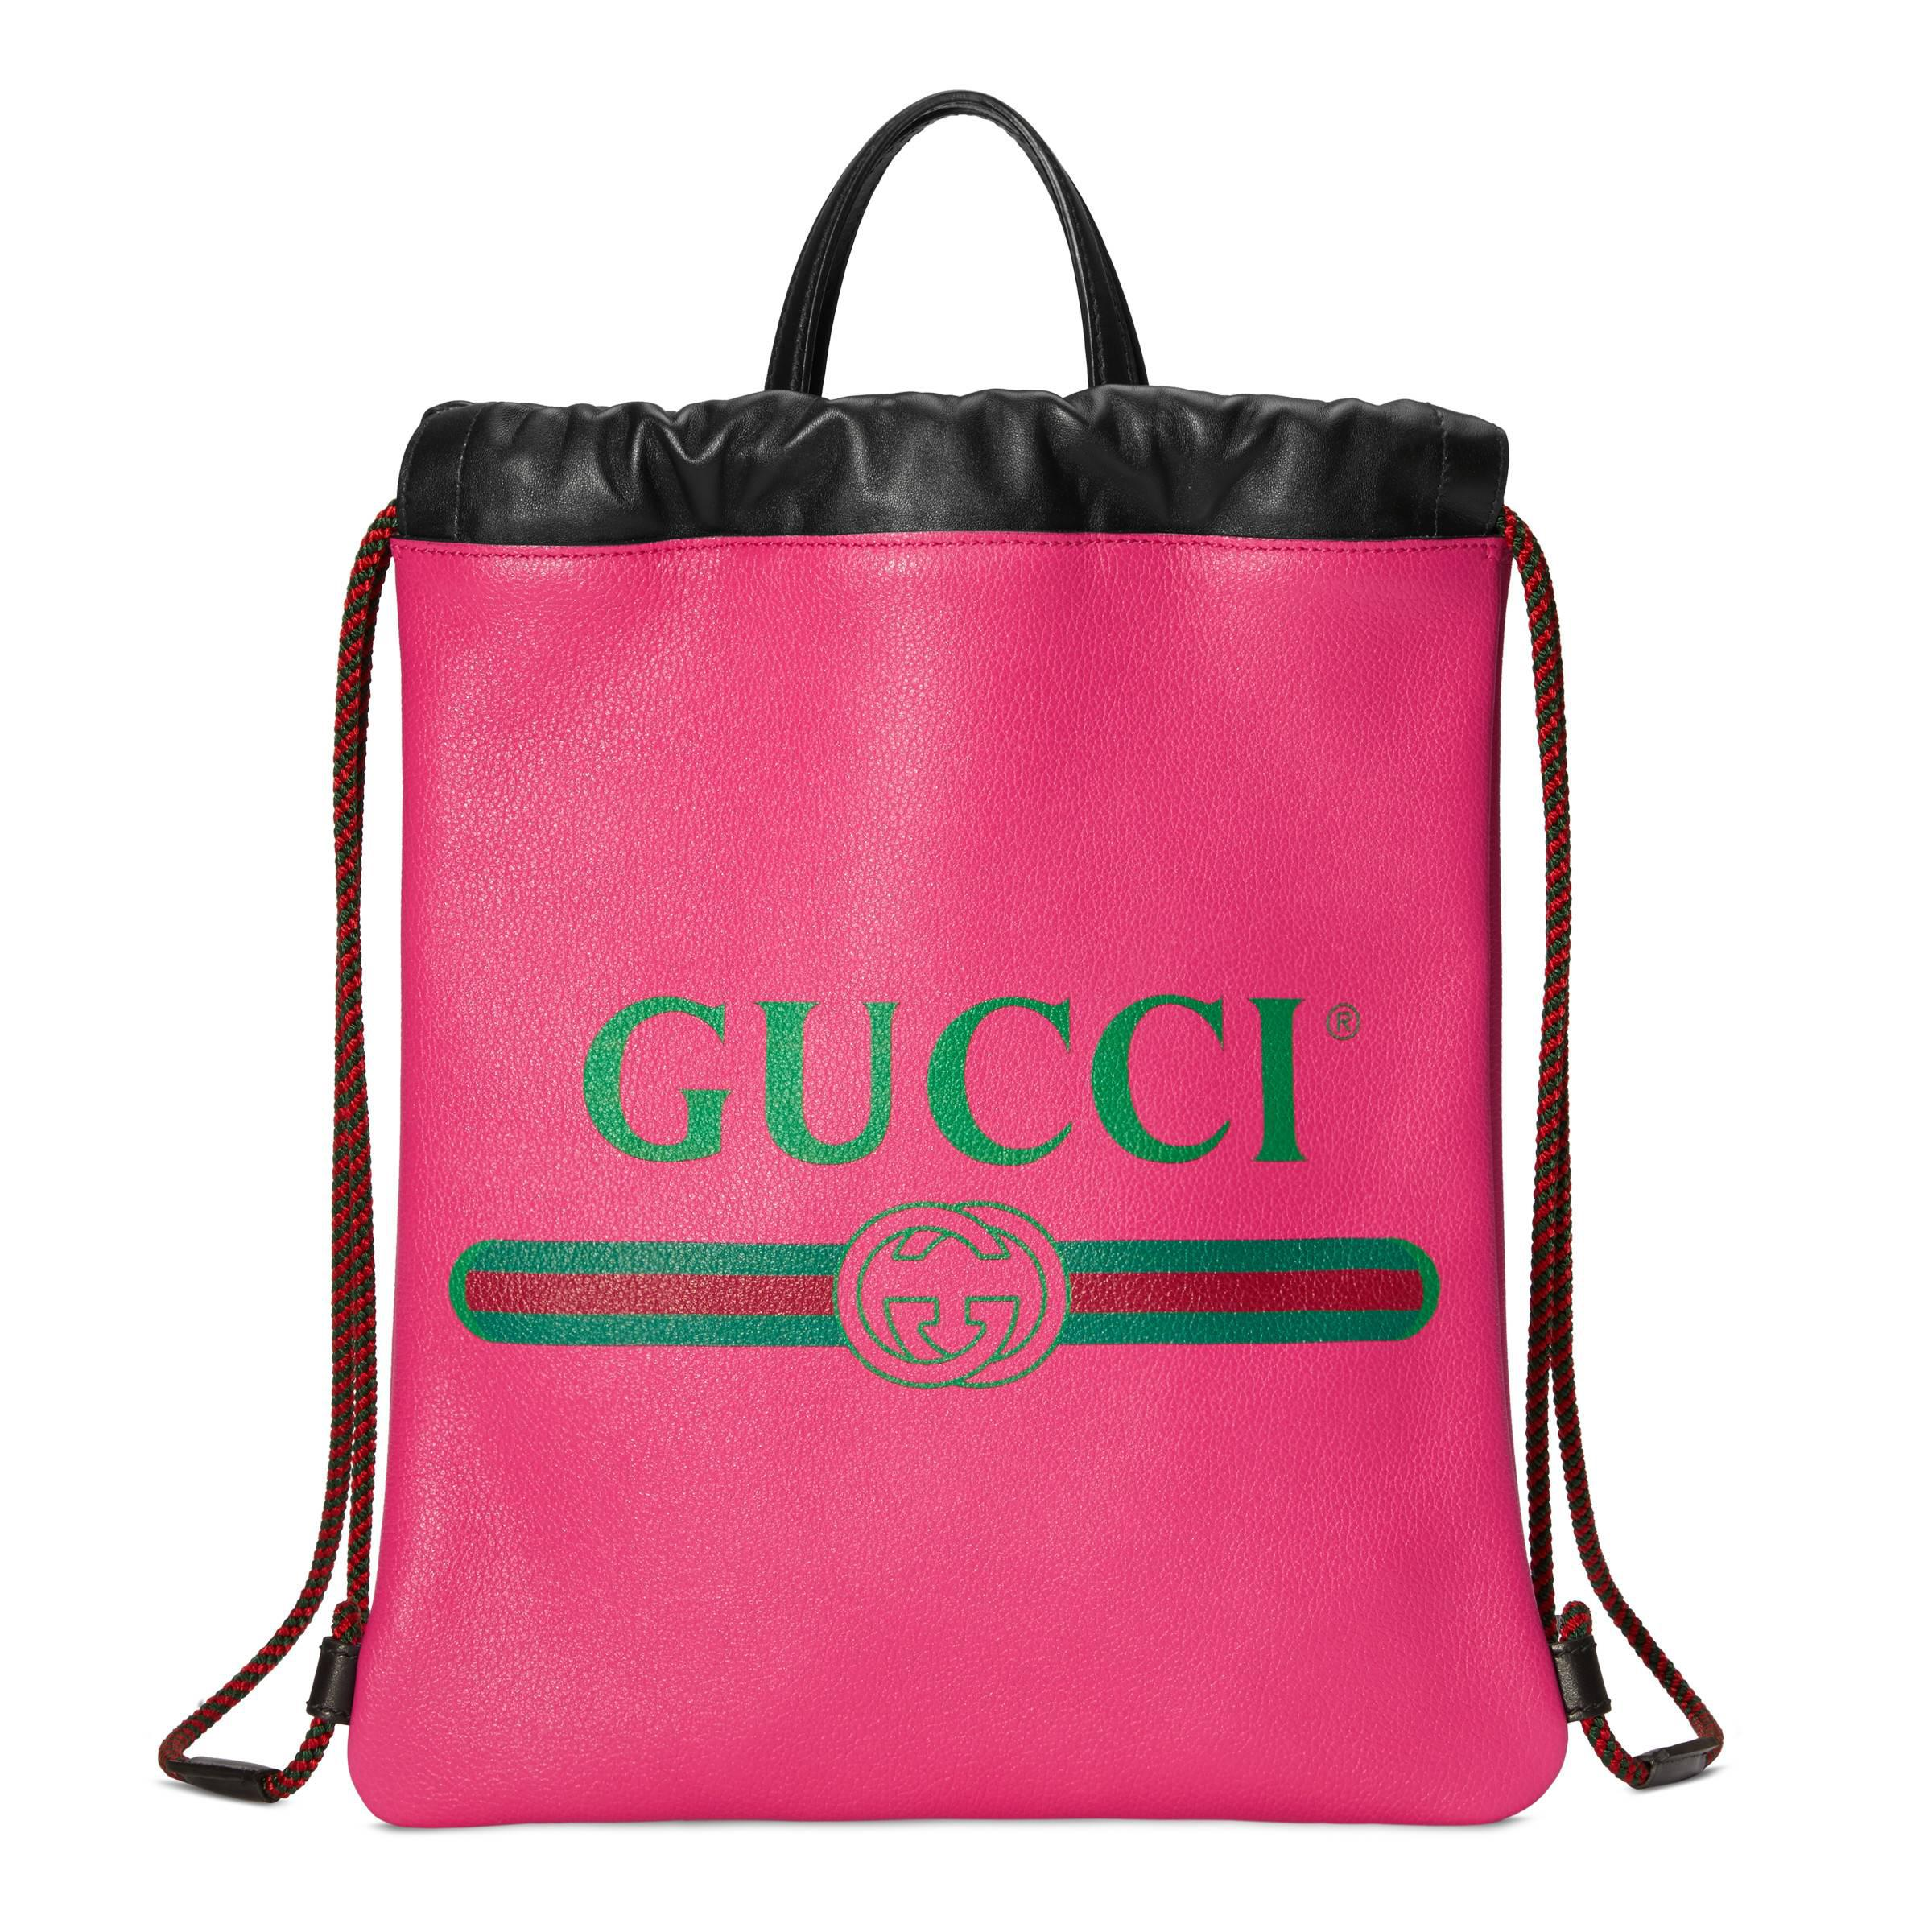 5f5e5673a59 Gucci - Black Print Small Drawstring Backpack - Lyst. View fullscreen